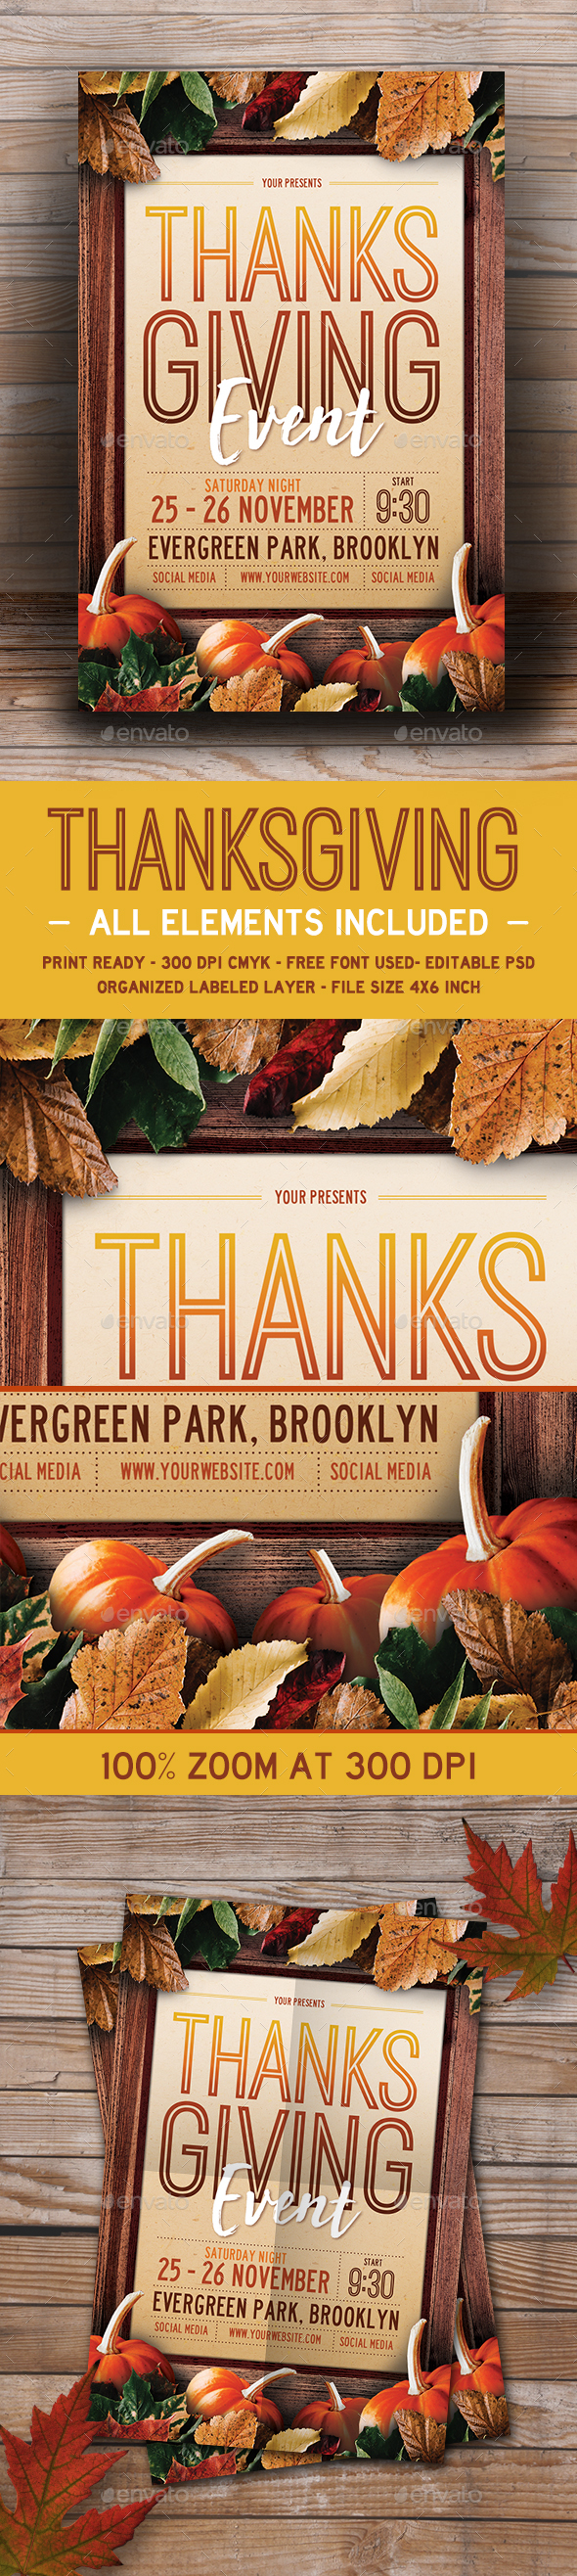 Thanksgiving Event Flyer - Events Flyers